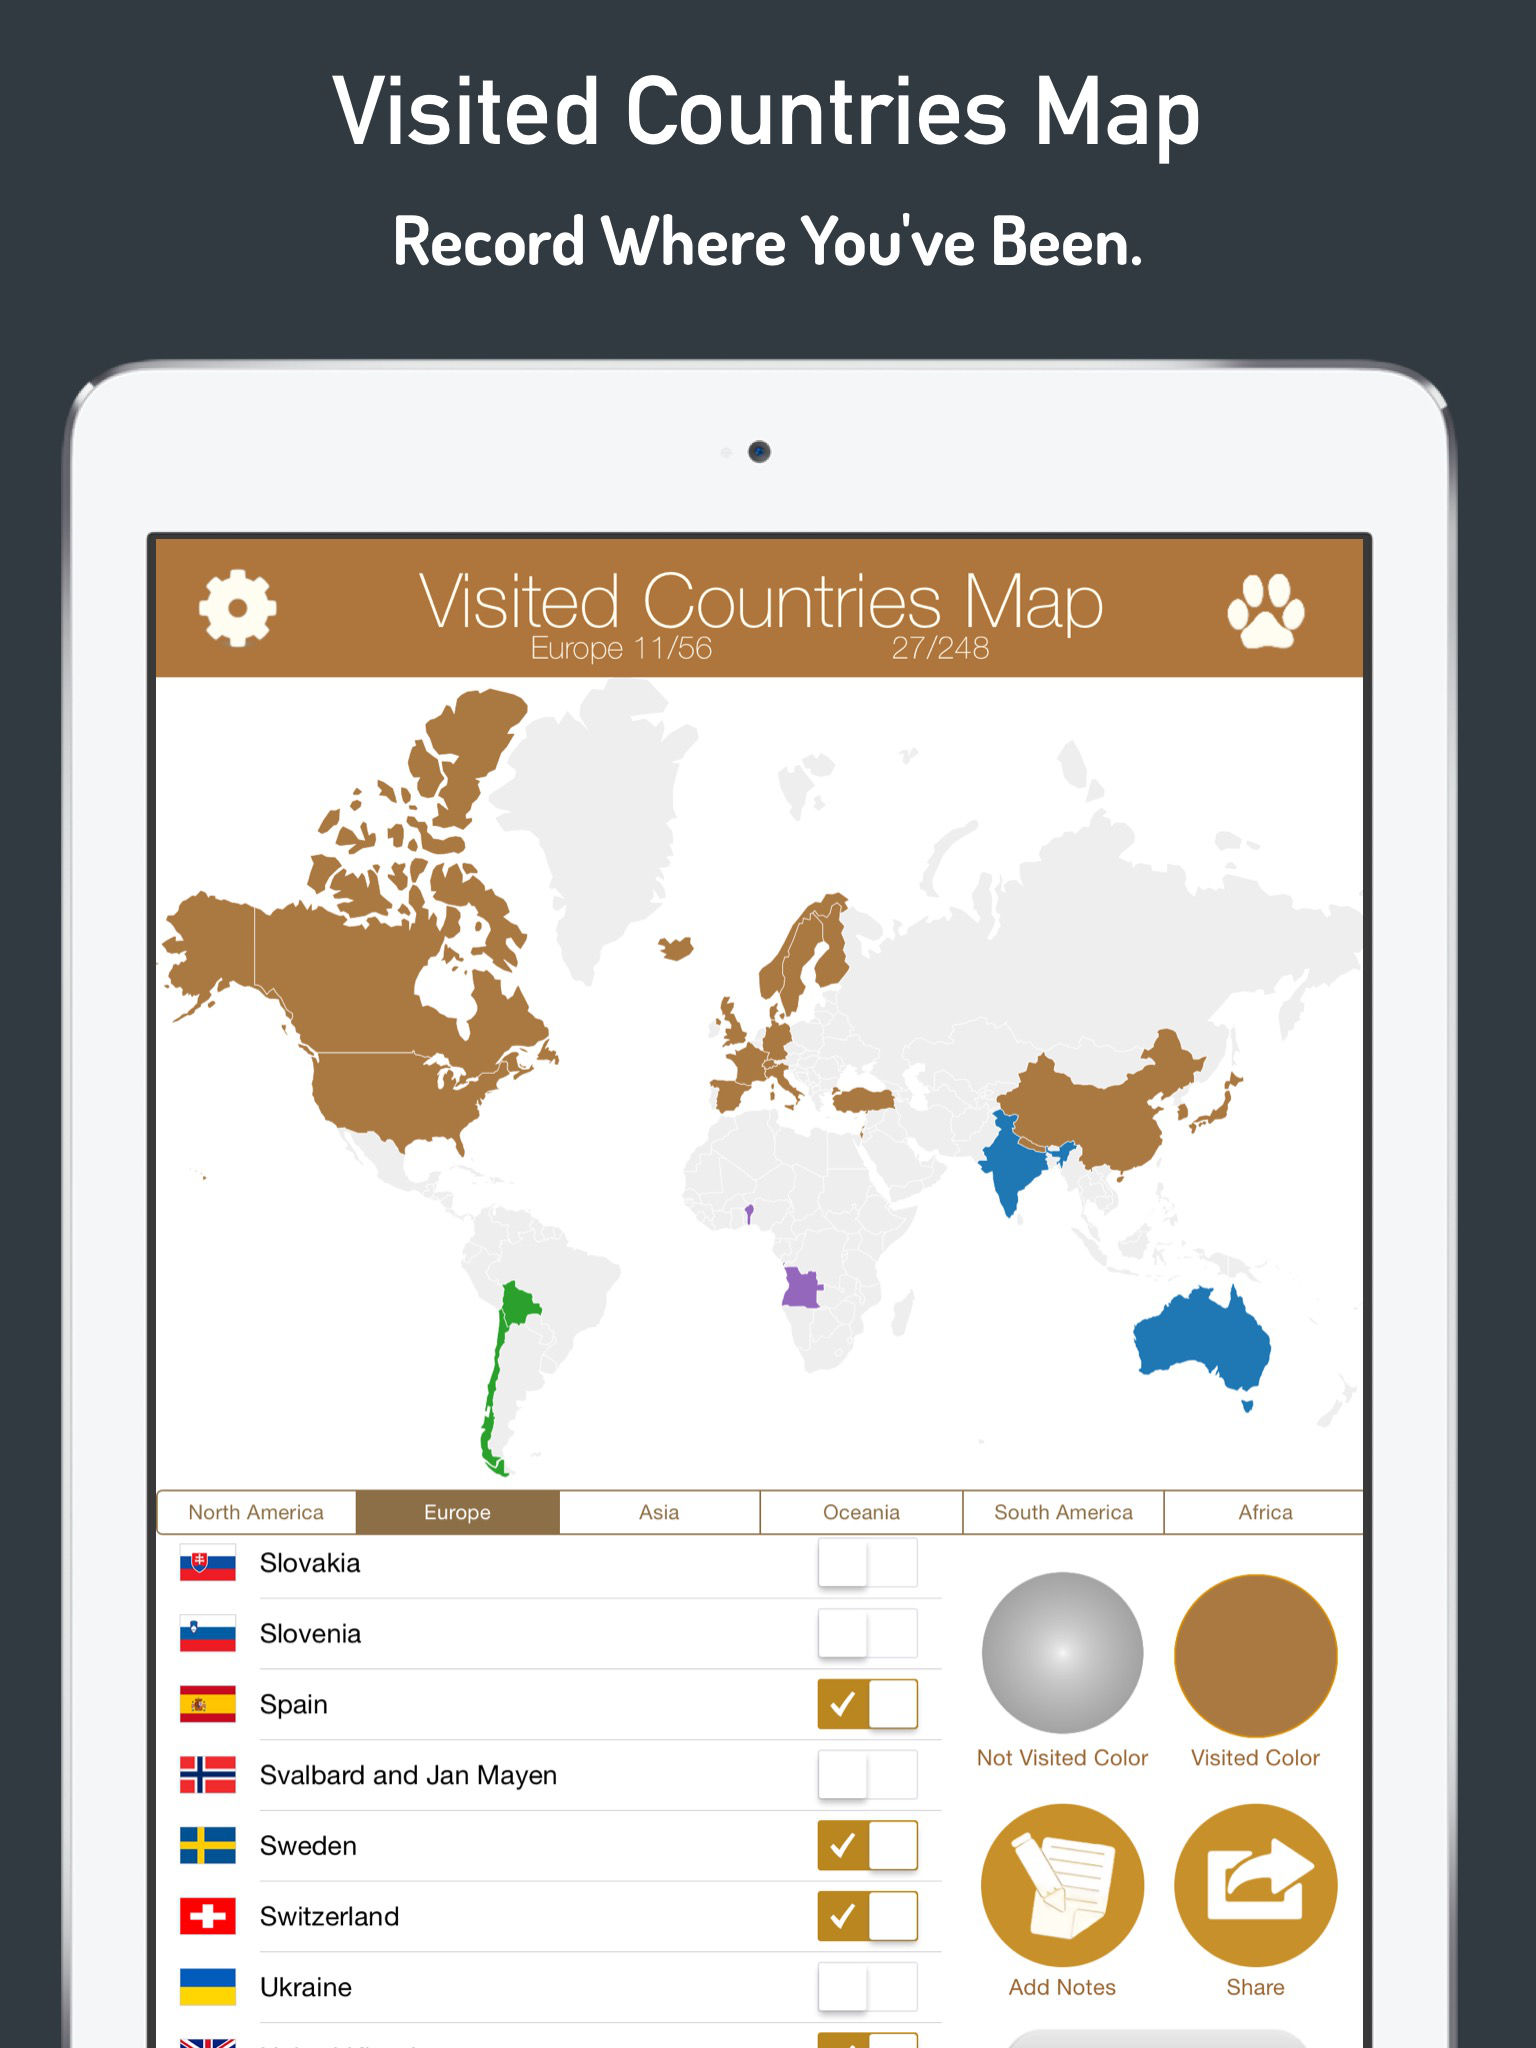 Visited Countries Map World Travel Log For Marking Where You Have - Create map of countries visited